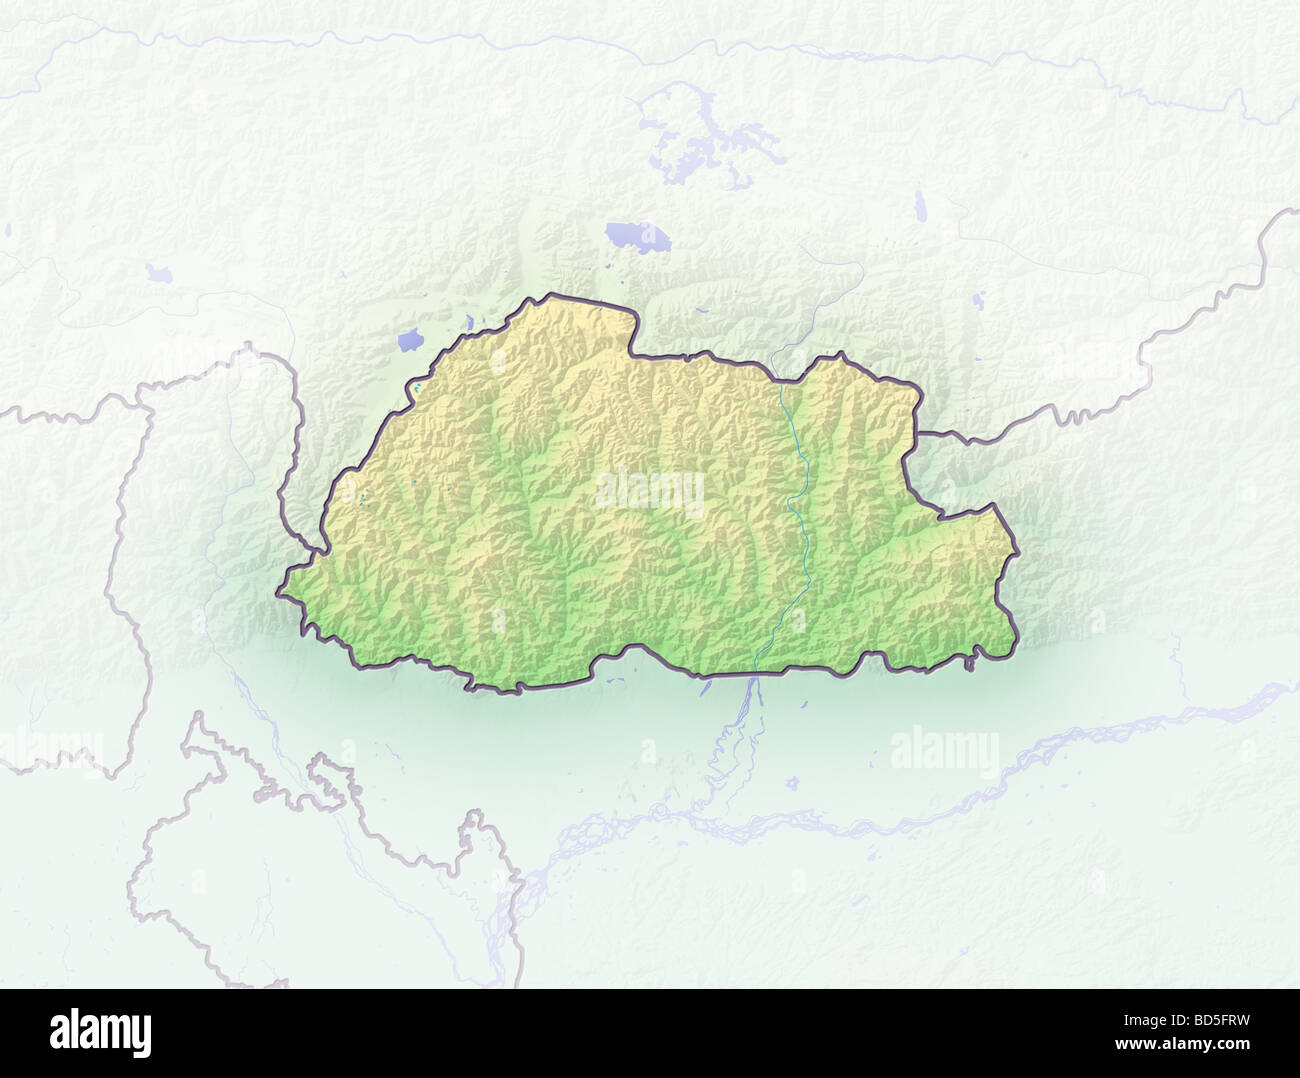 Bhutan Map Stock Photos & Bhutan Map Stock Images - Alamy